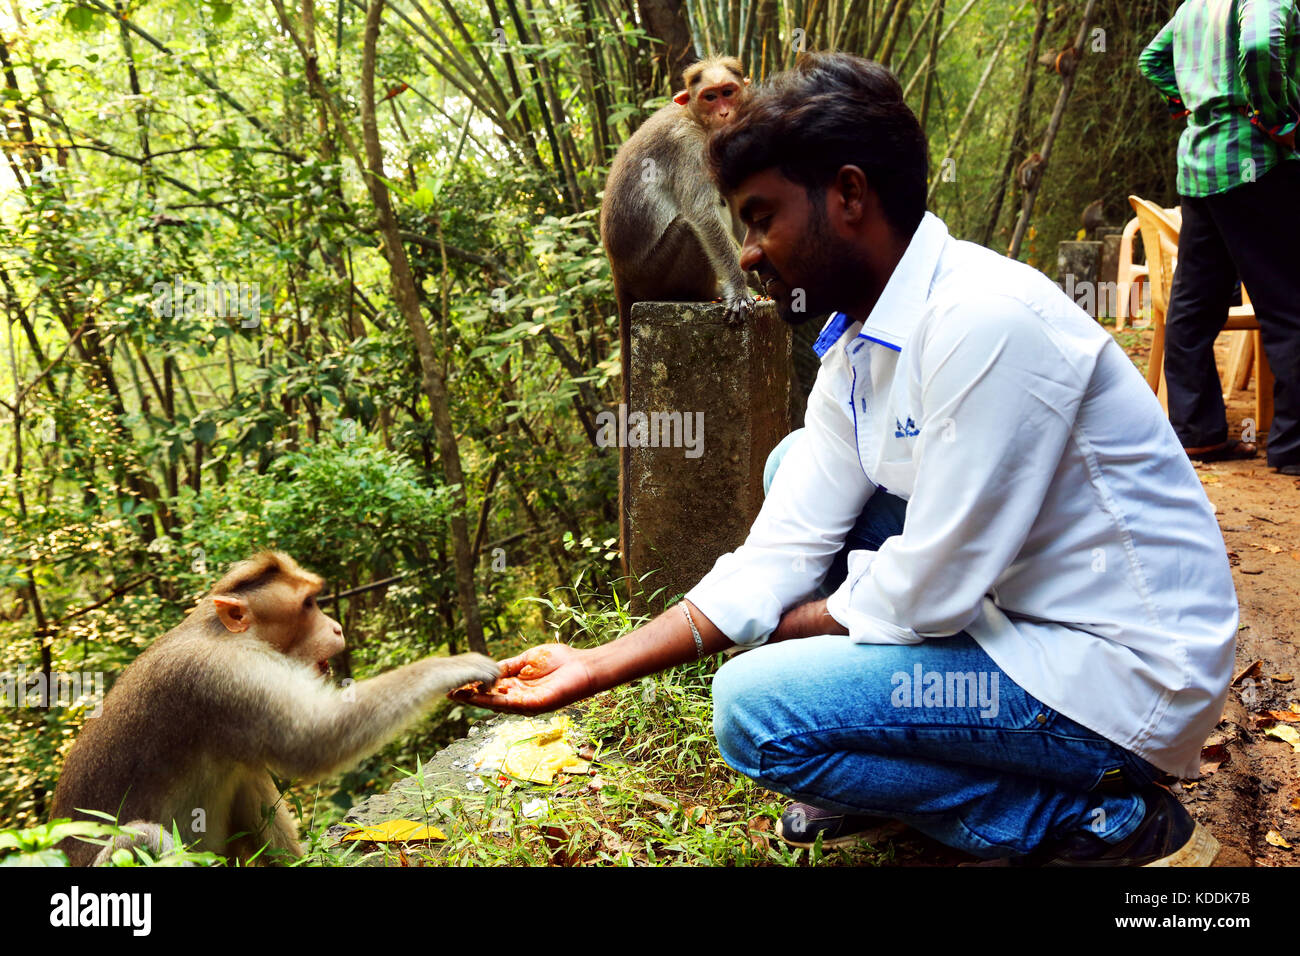 Young man feeding a monkey - Stock Image